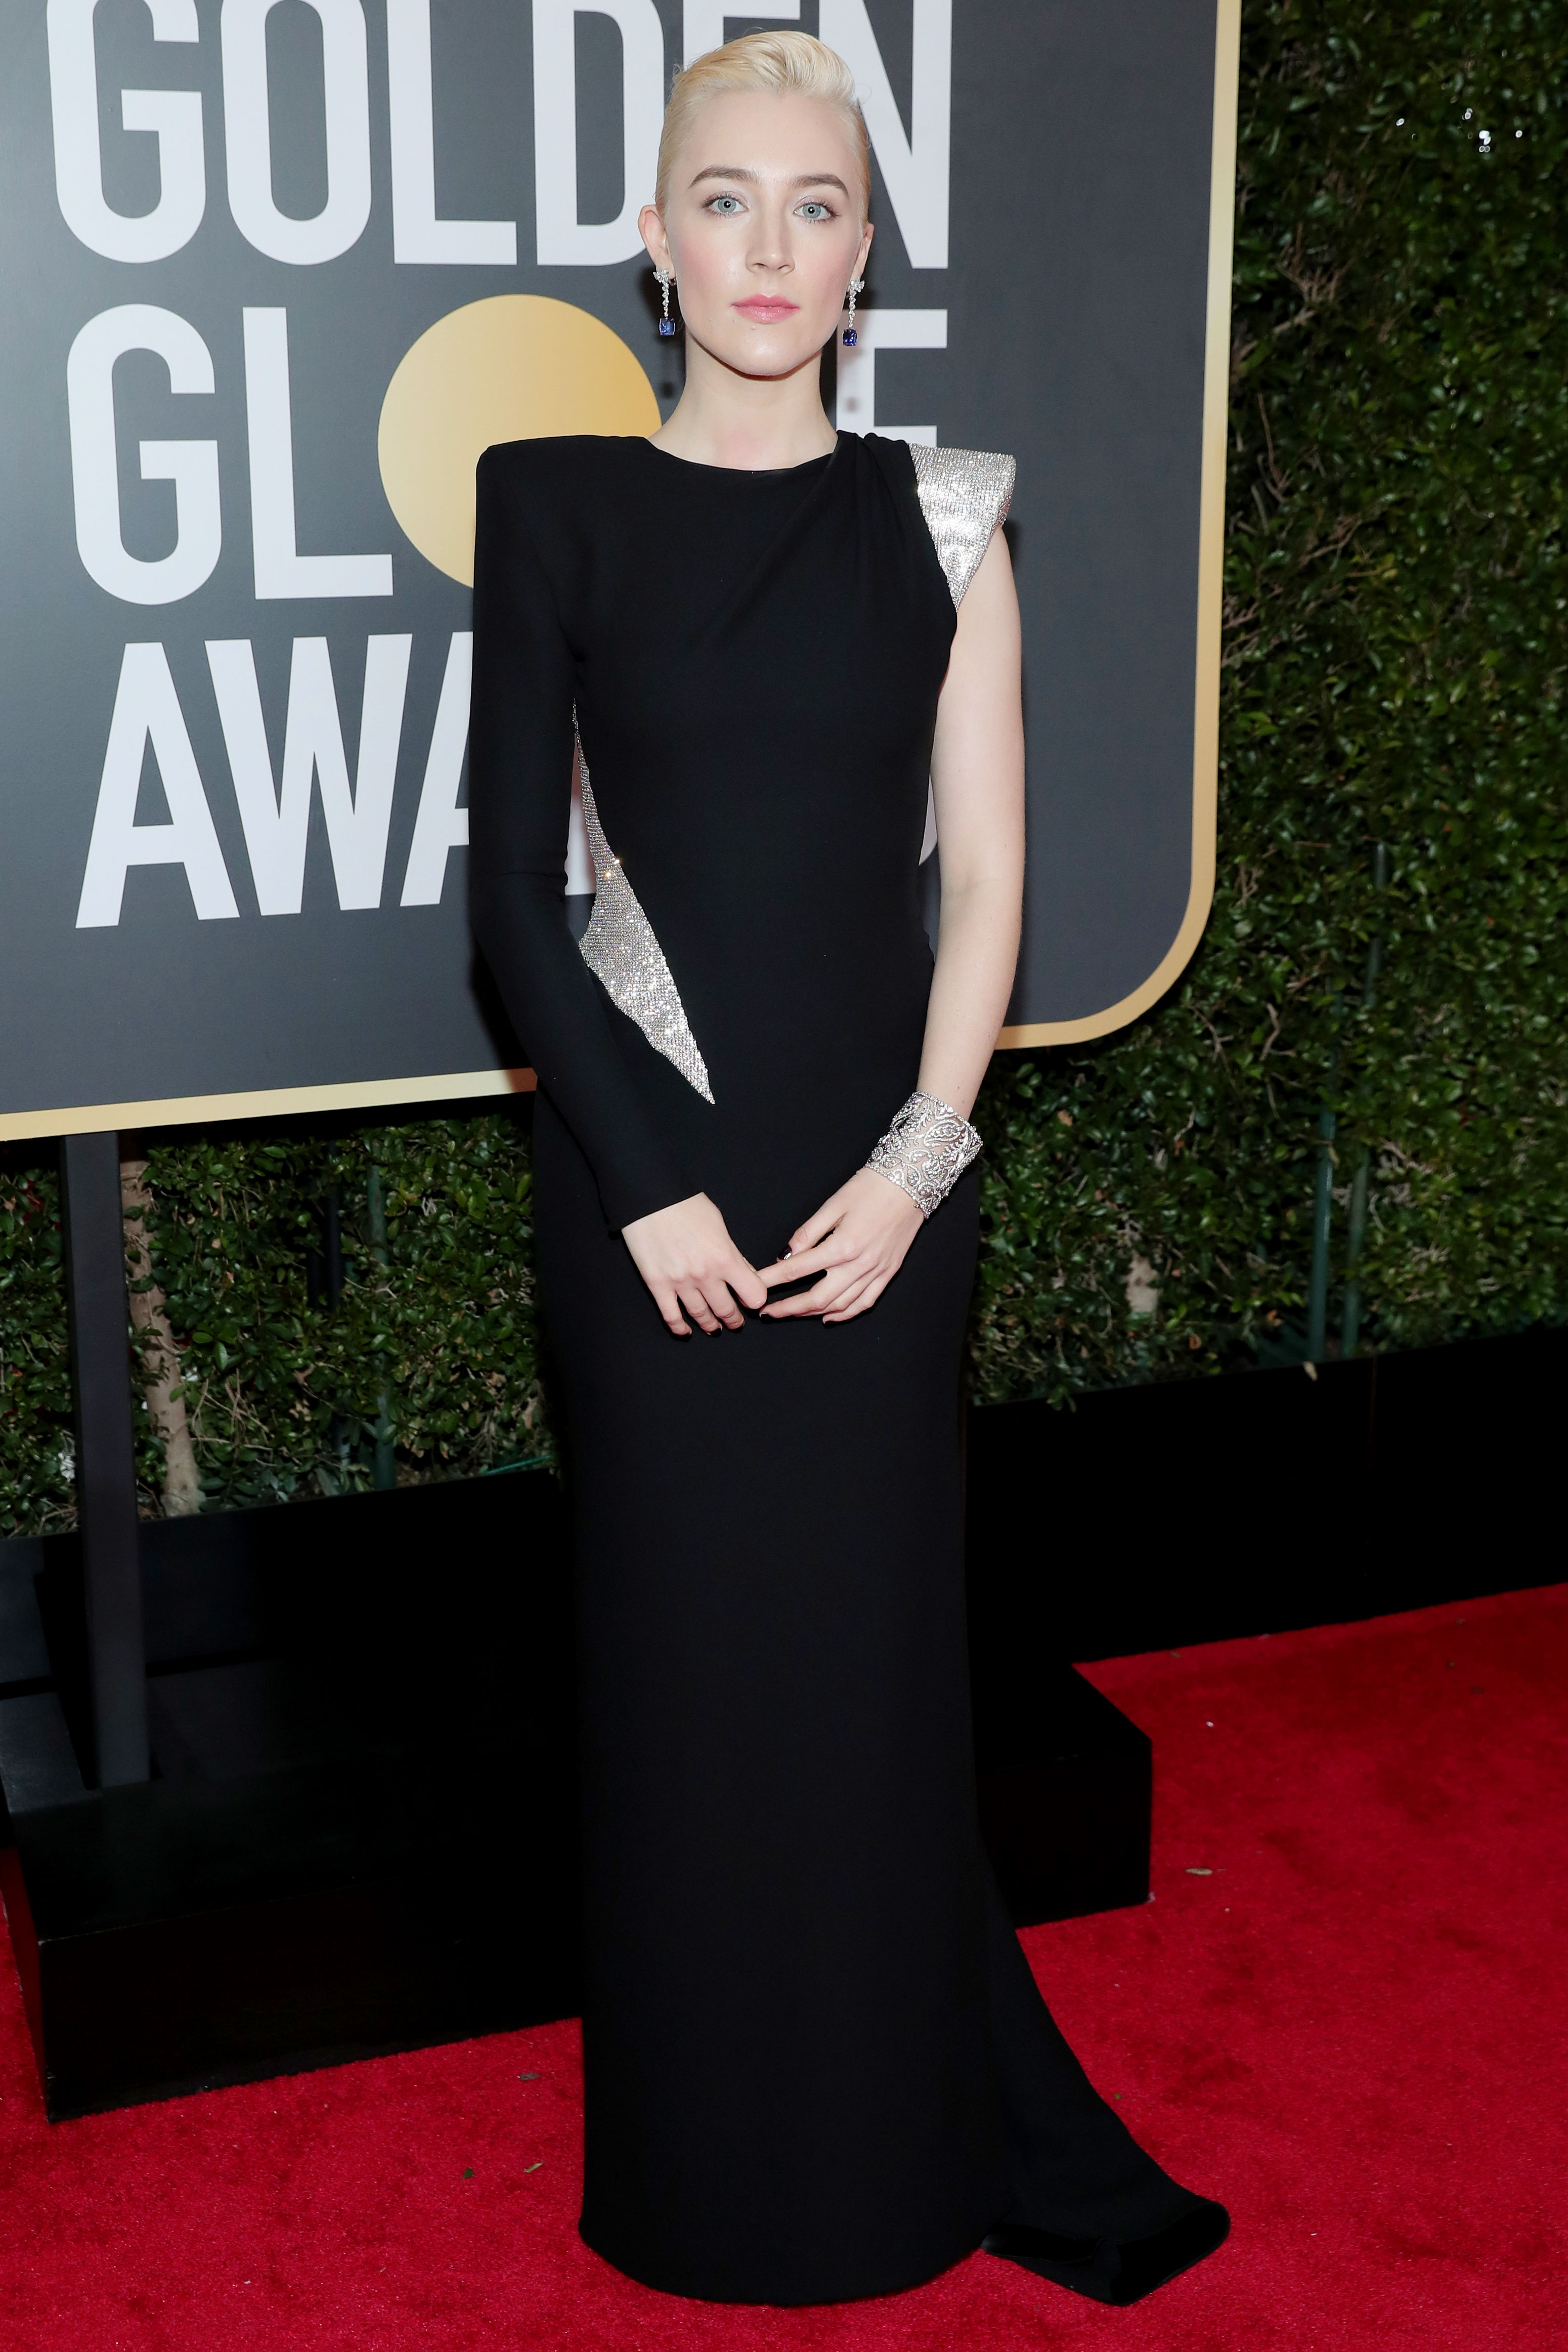 Image result for saoirse ronan golden globes dress